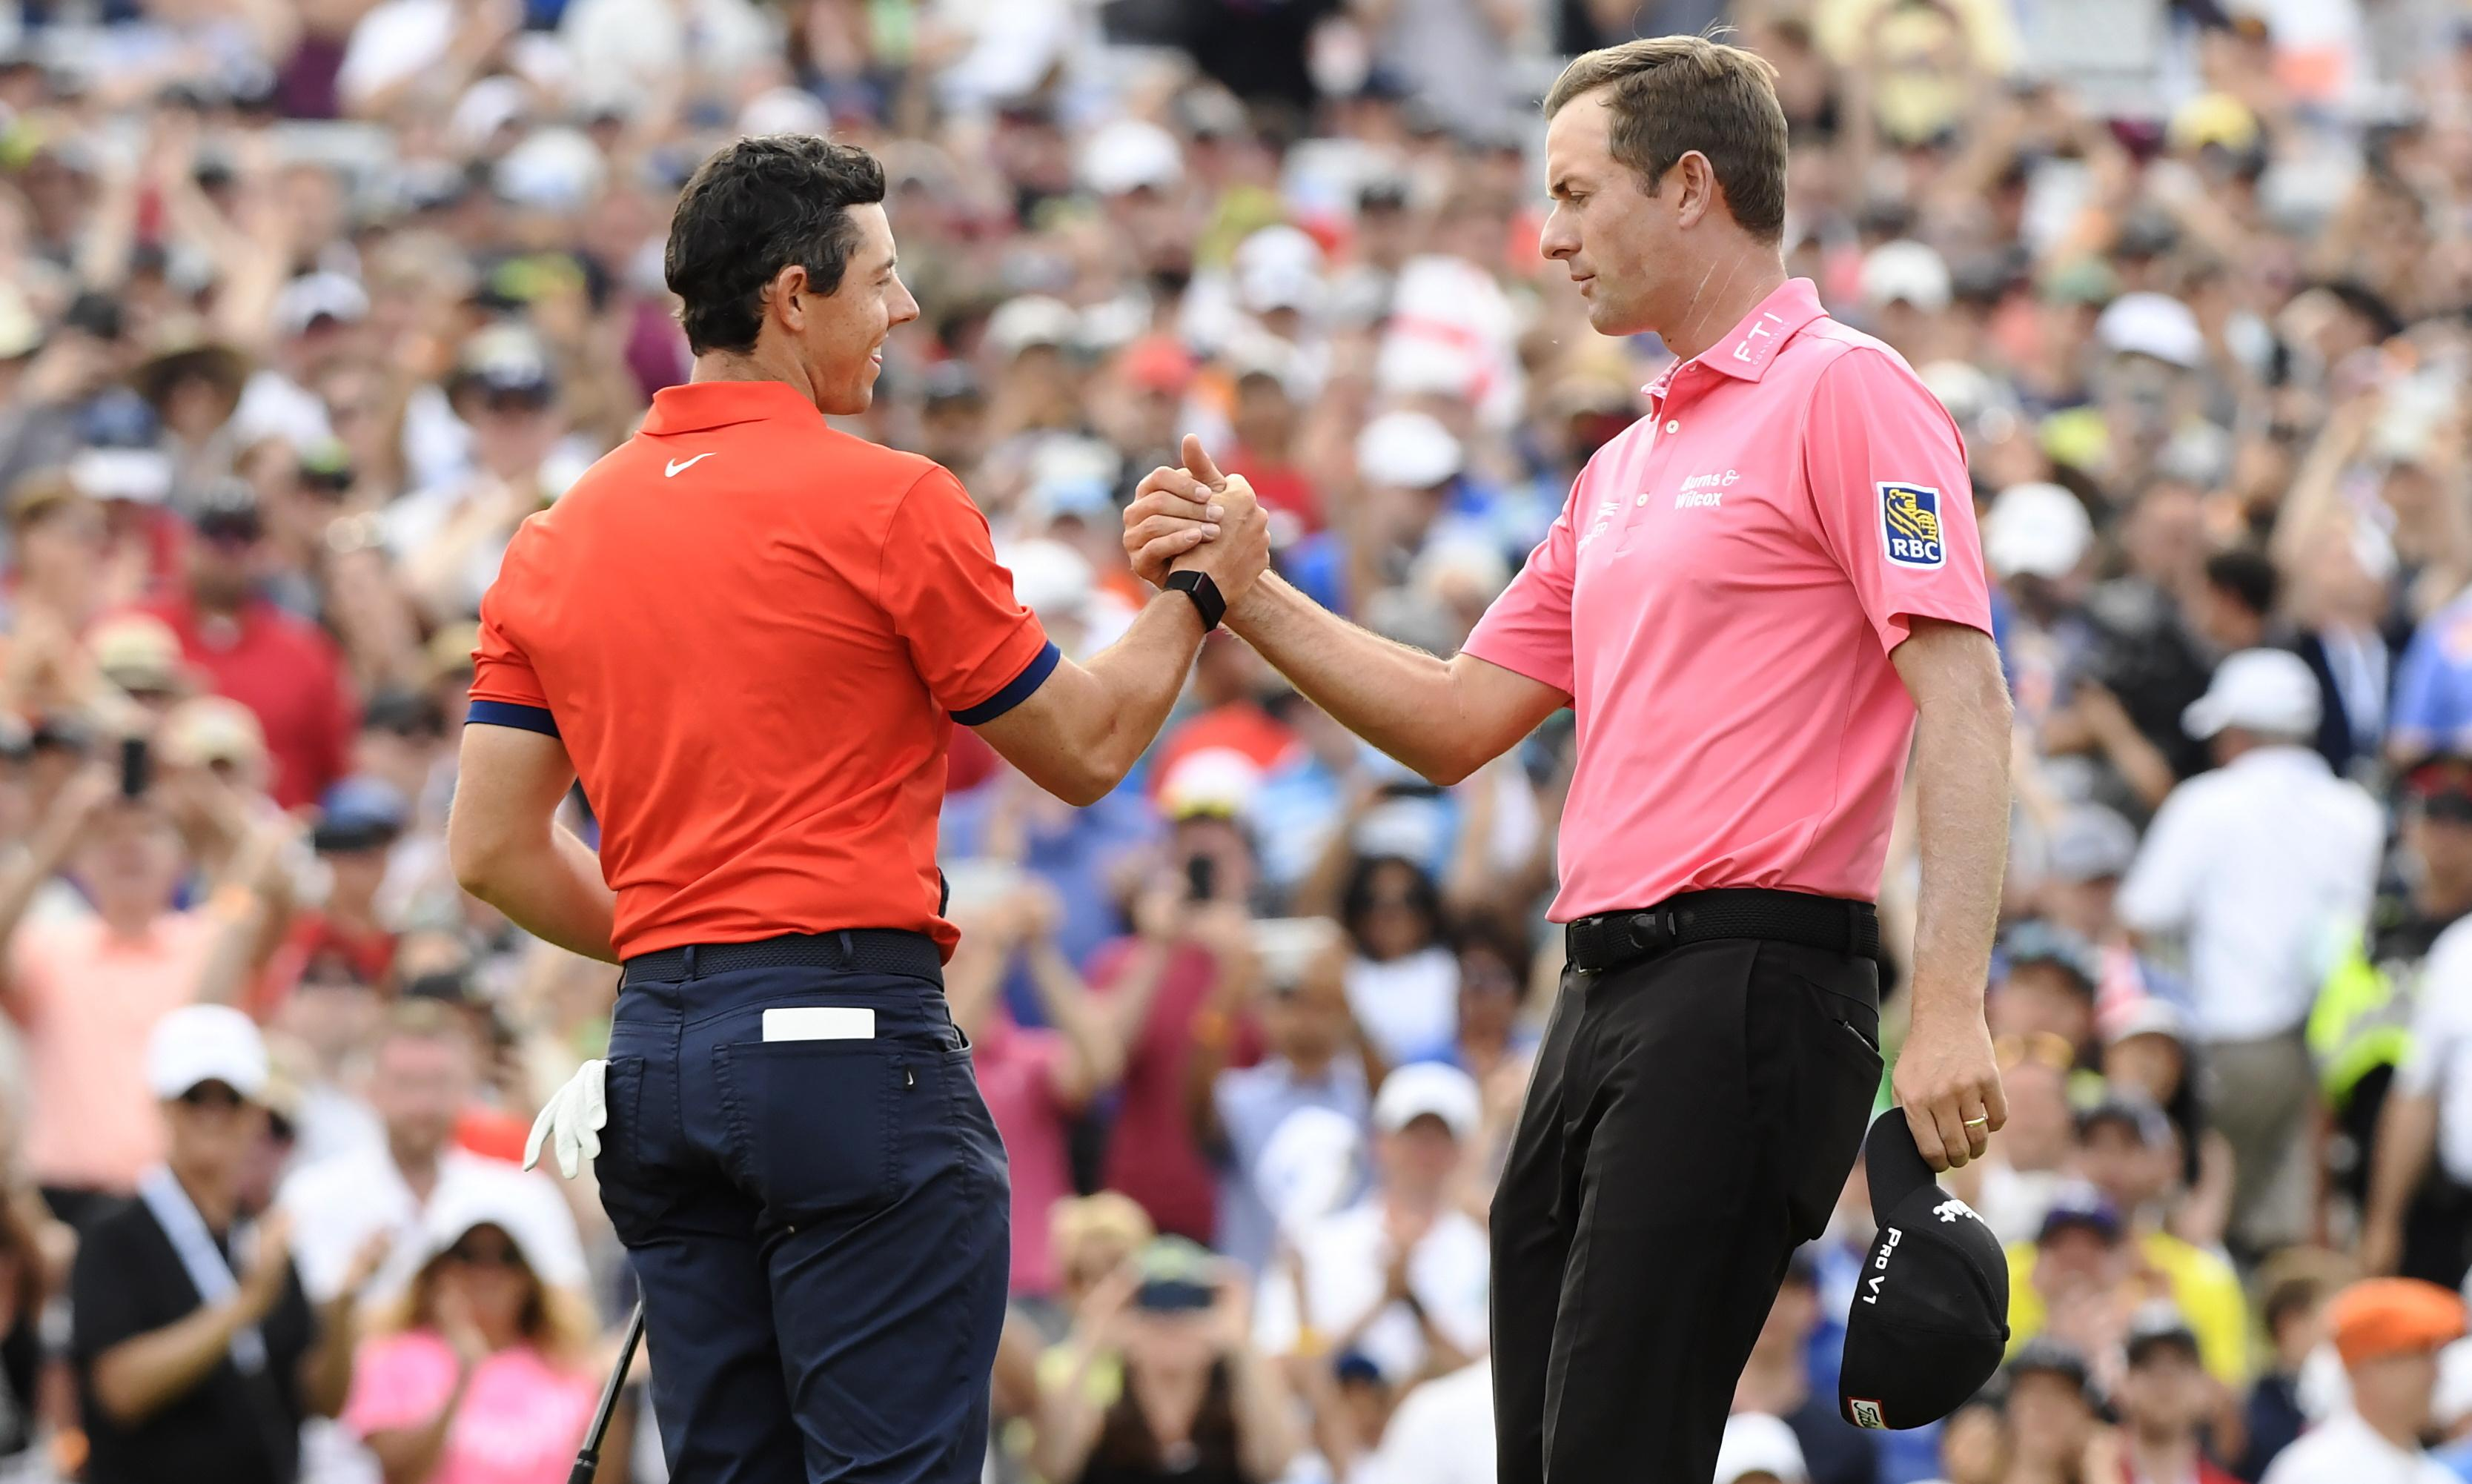 Rory McIlroy fires a nine-under 61 to win Canadian Open by seven shots